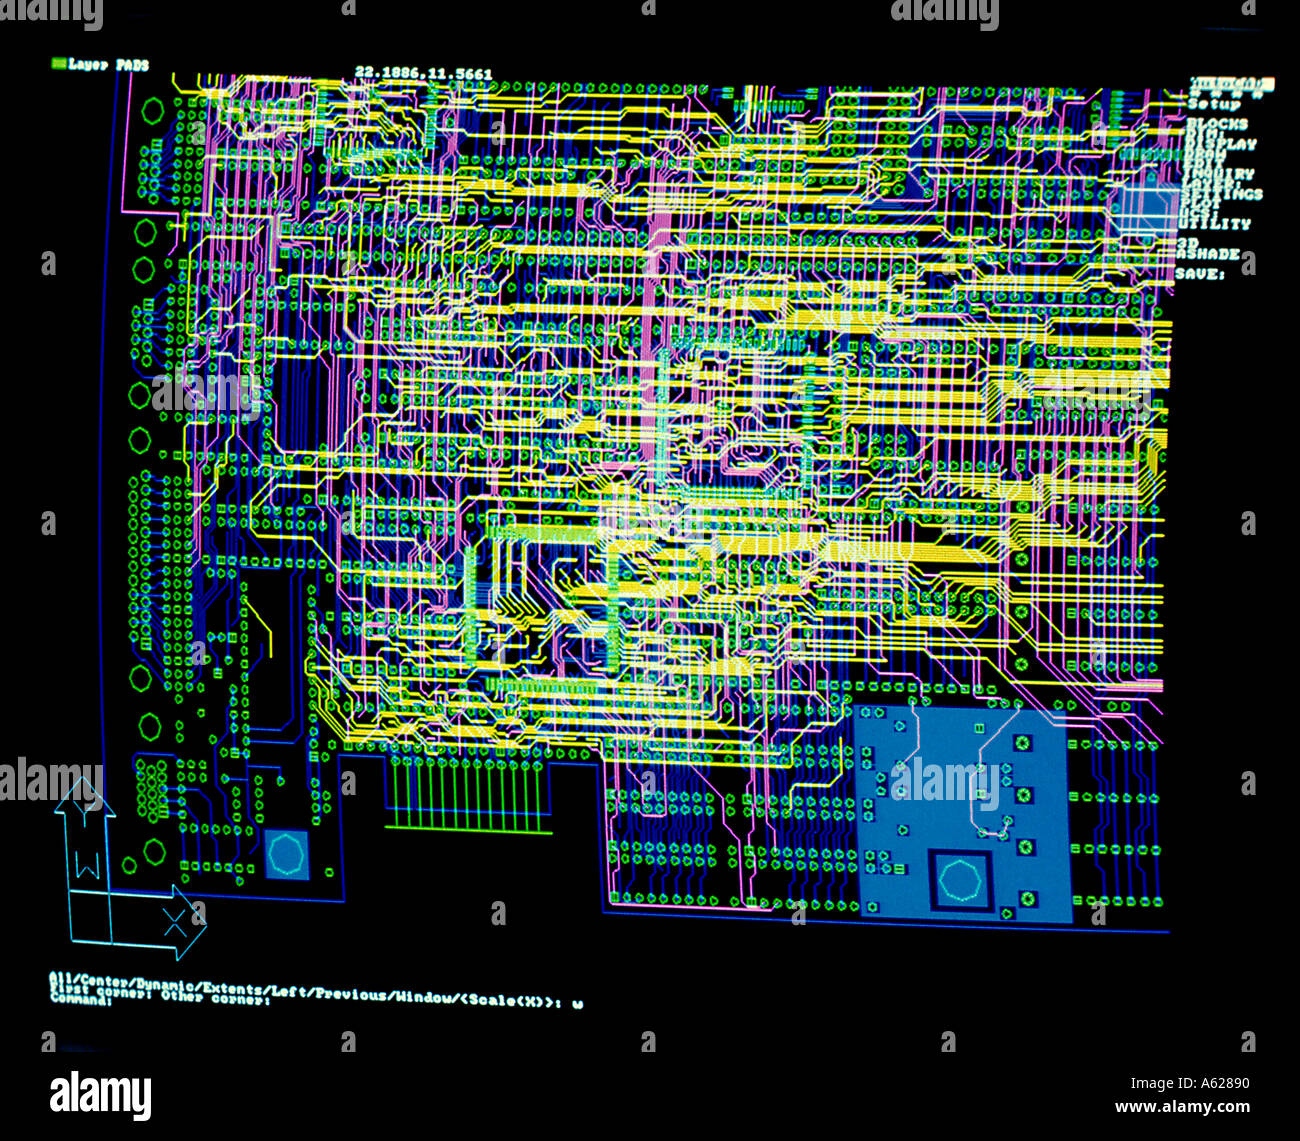 Monitor display of CPU design and schematic